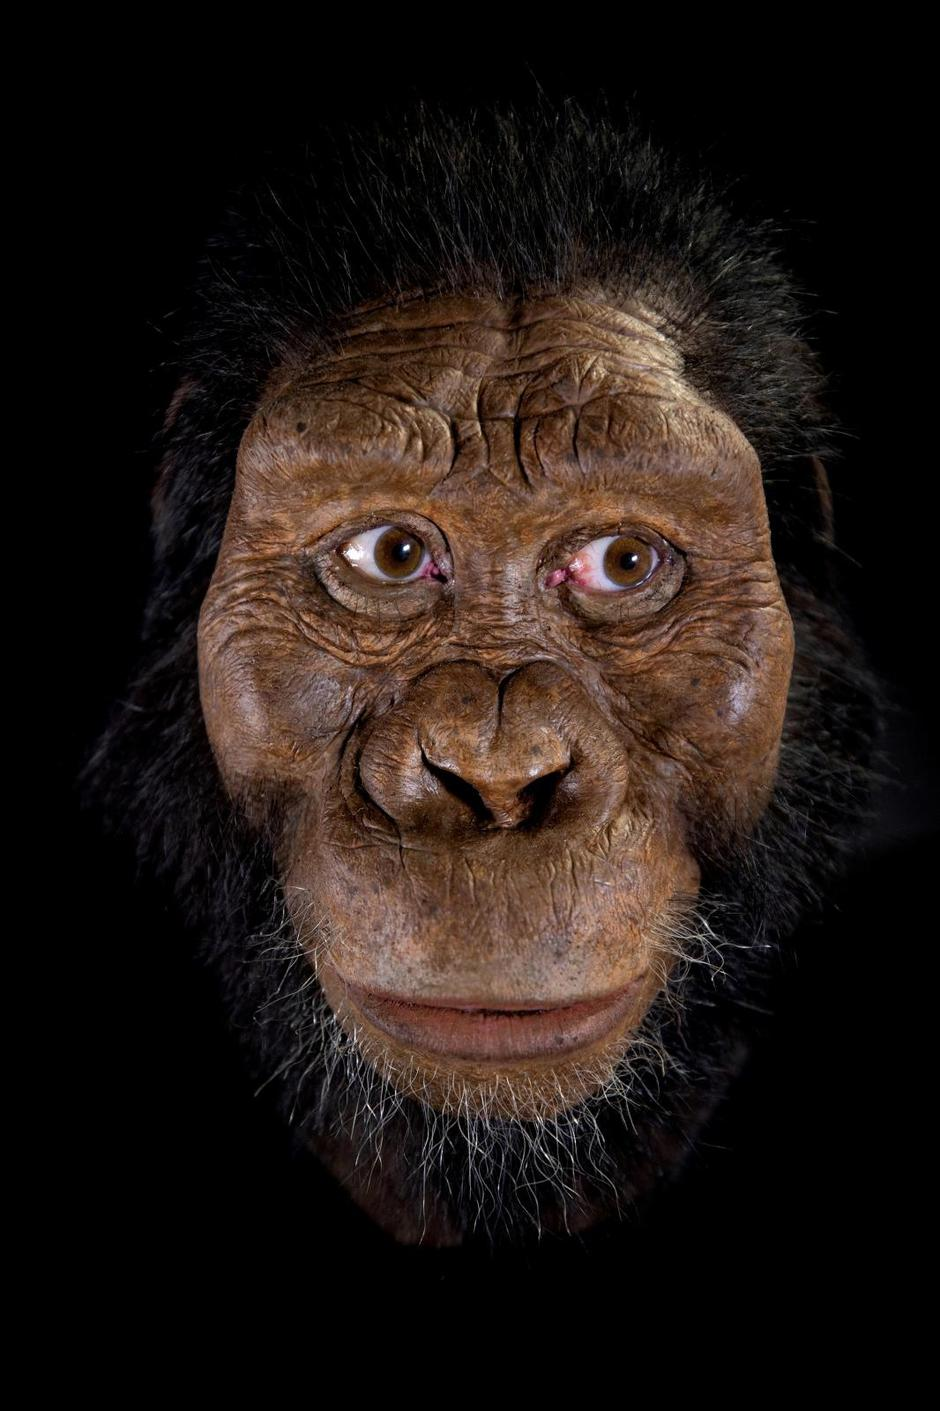 Handout photo of a facial reconstruction by John Gurche of the species Australopithecus anamensis, based on a nearly complete cranium fossil discovered in 2016 in Ethiopia | Autor: Handout/REUTERS/PIXSELL/REUTERS/PIXSELL